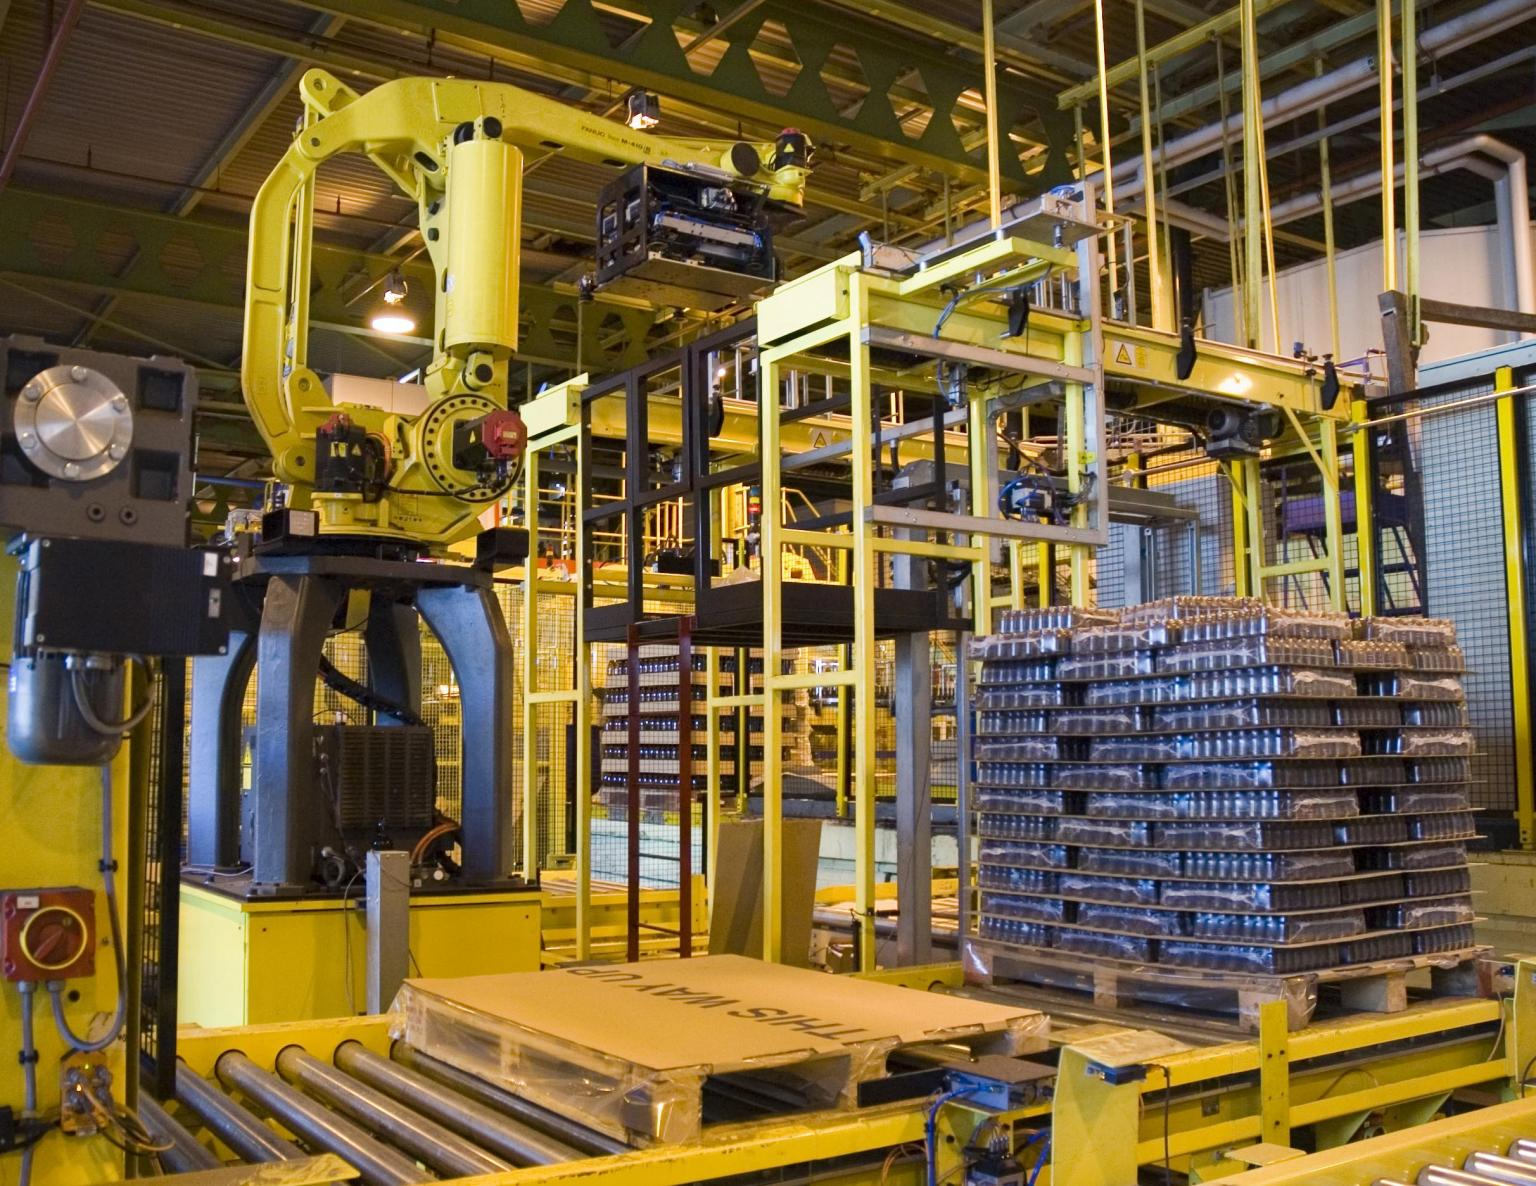 Fully automated palletising with two adjacent pallets allowing the robot to stack one while the full one is removed and replaced